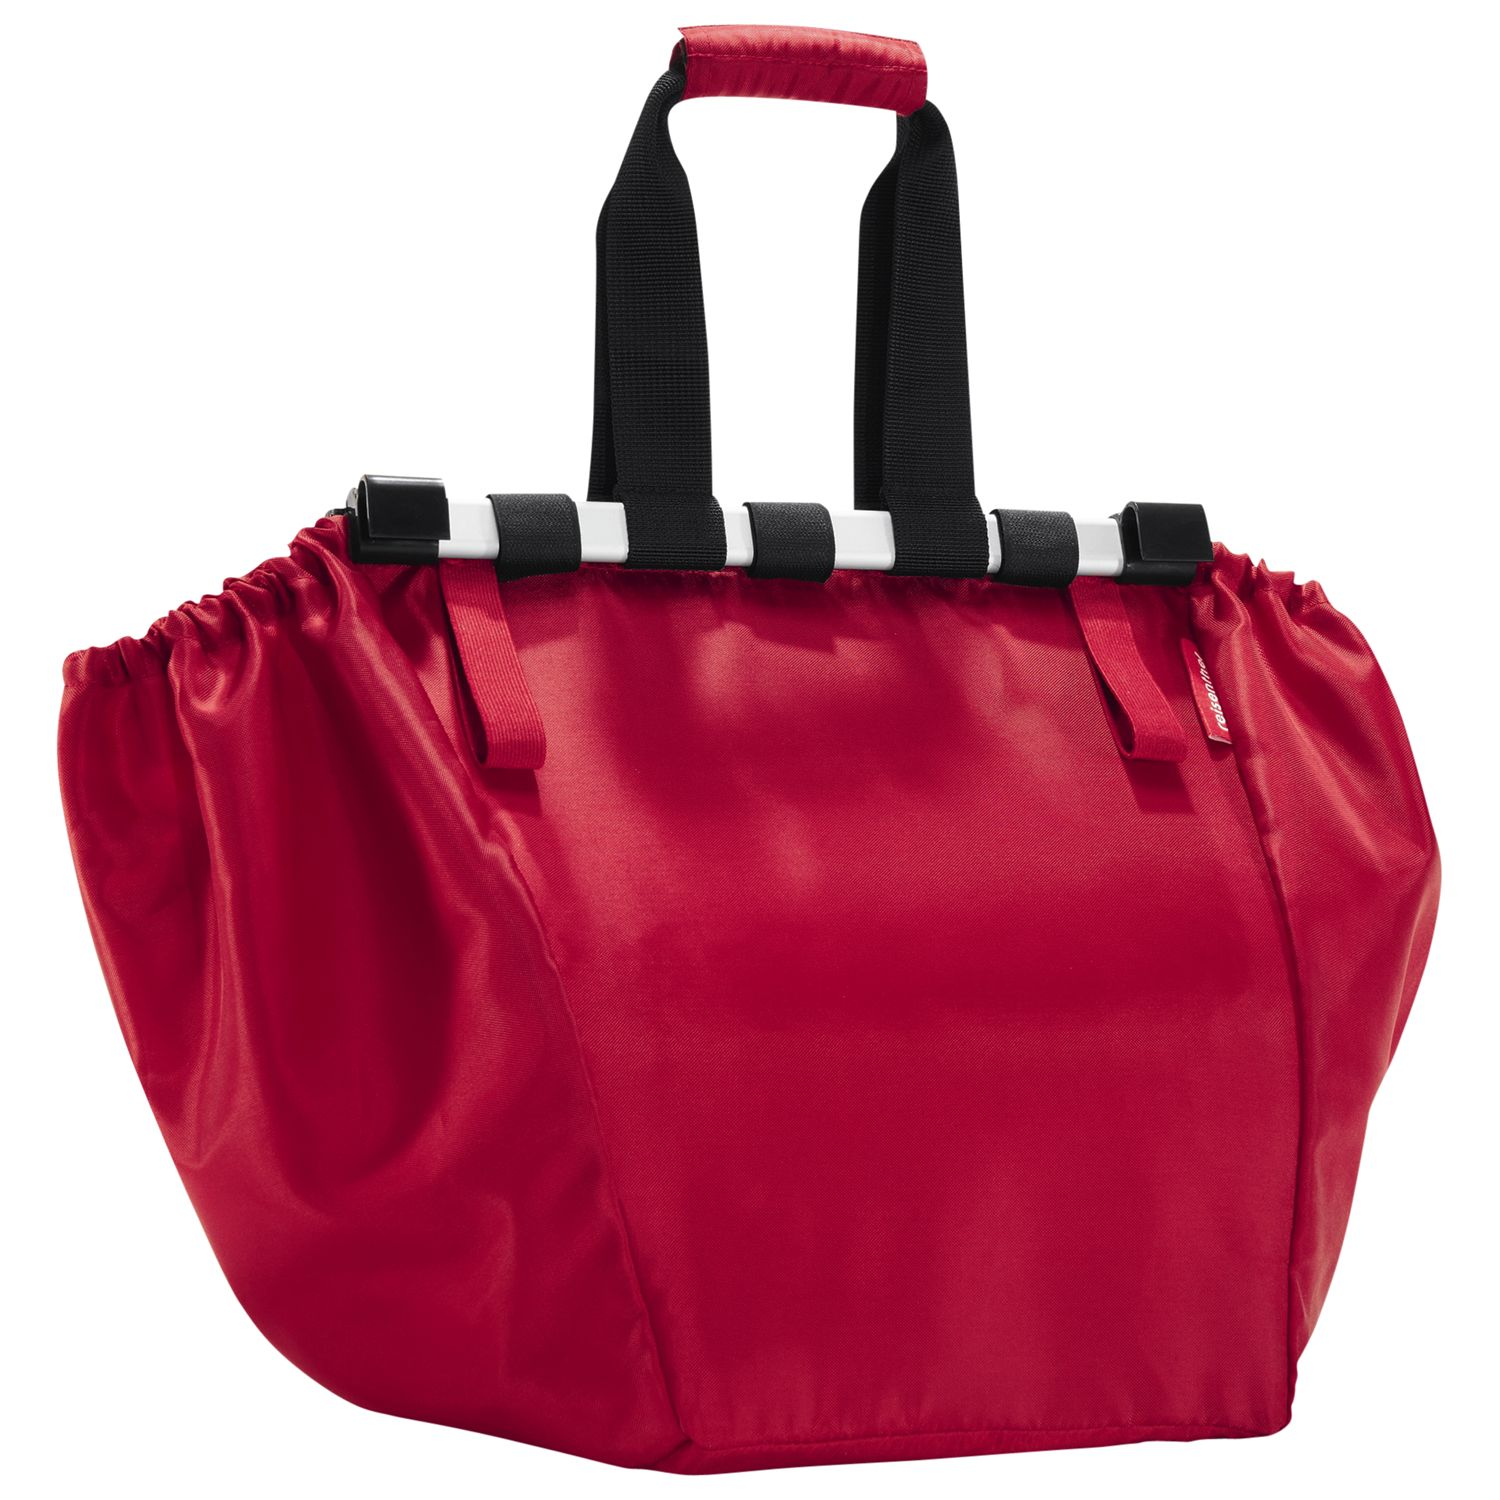 Reisenthel Easyshopping Bag, Red